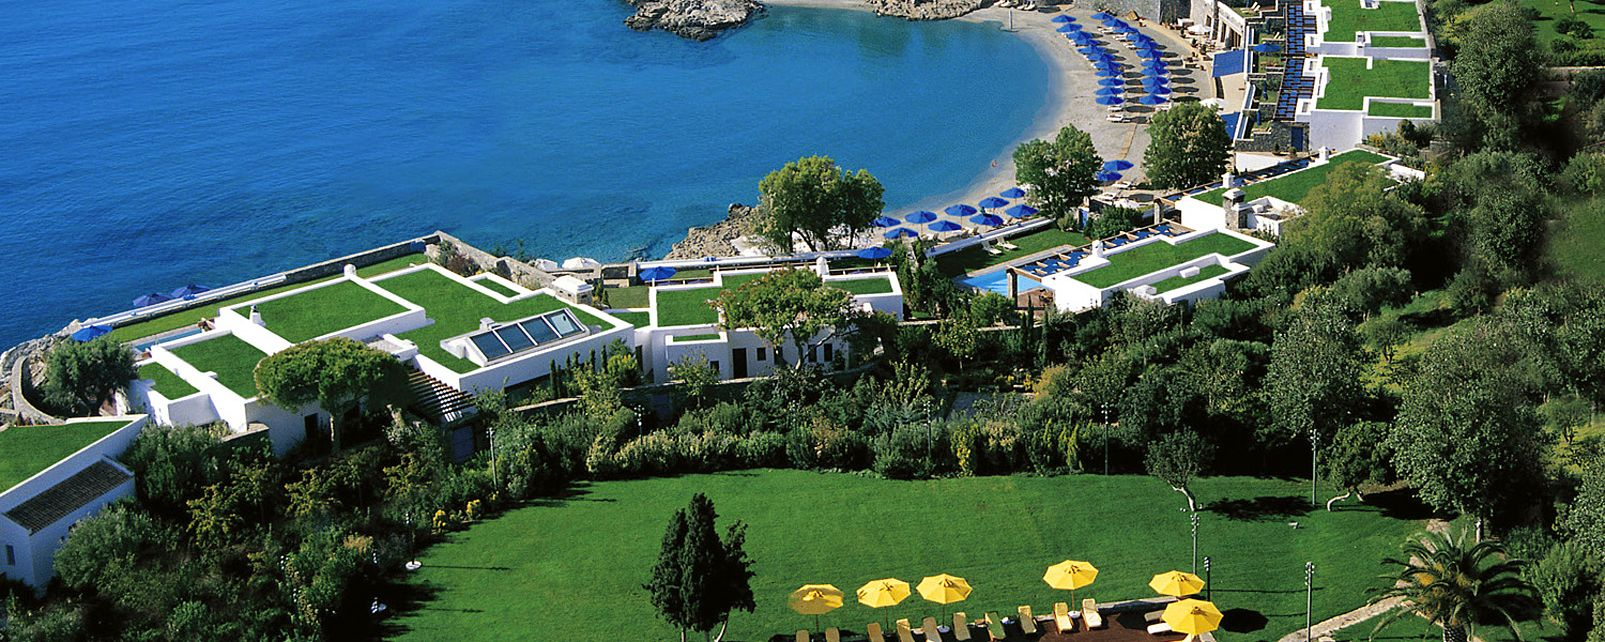 Hôtel Grand Resort Lagonissi